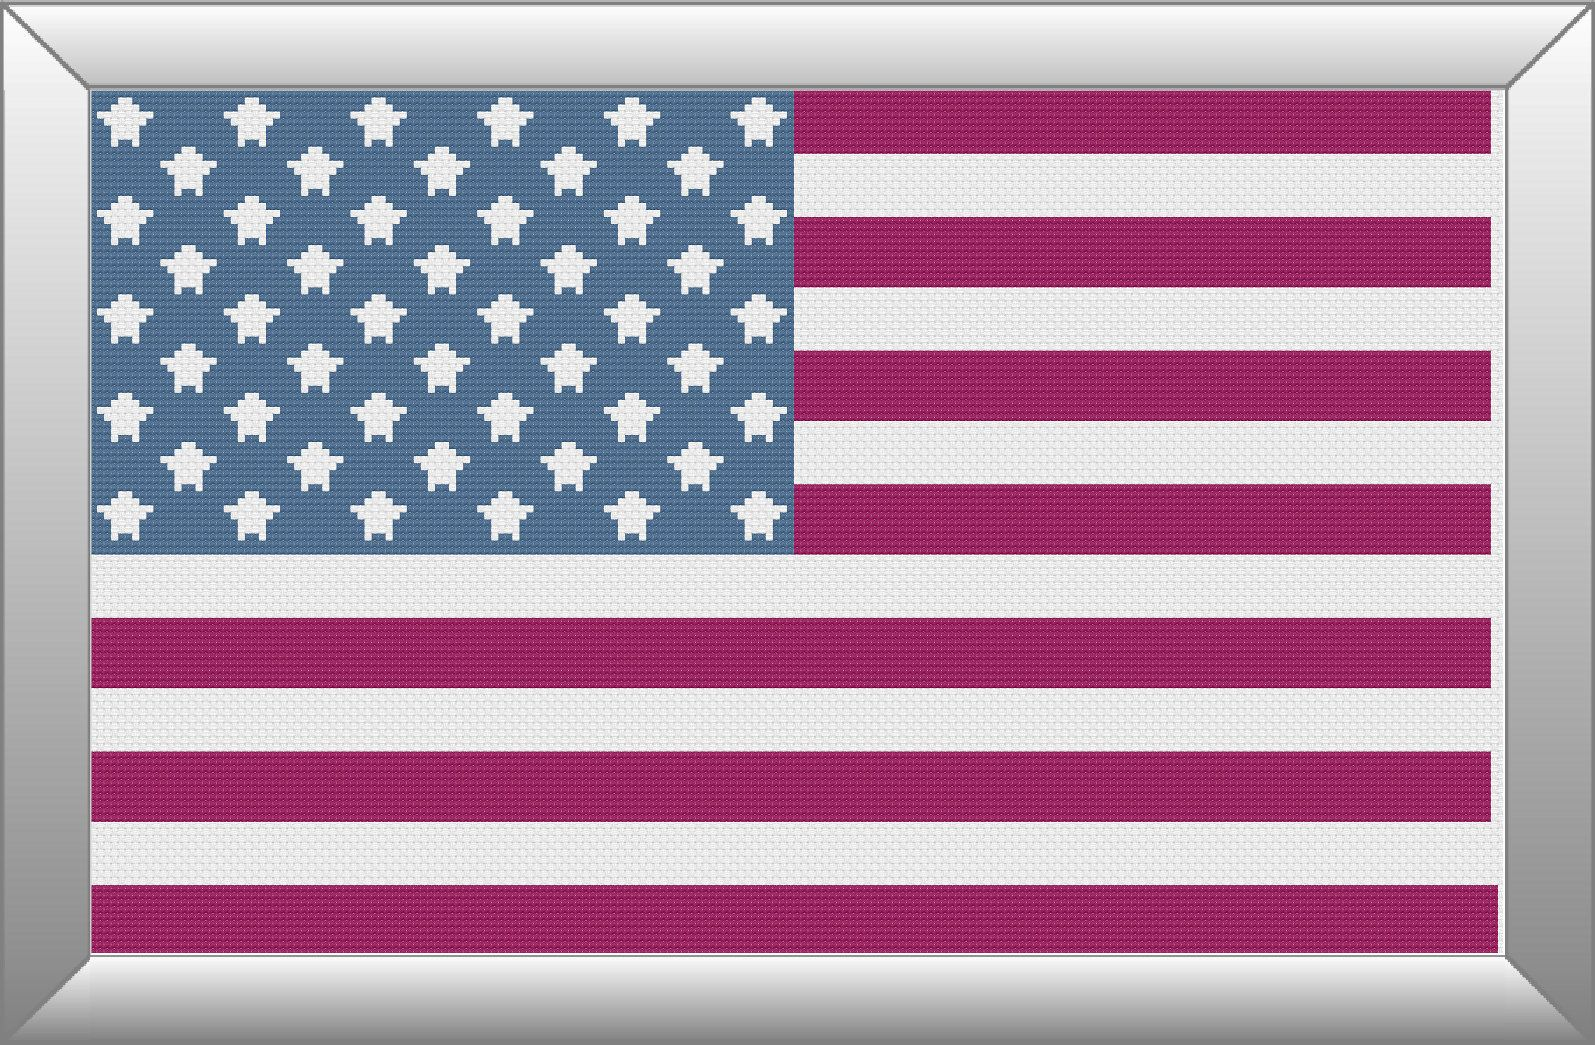 American Stars Stripes Flag Pattern Chart For Cross Stitch Or Embroidery Use With Dmc Floss Or Other Thread Pdf Dig Needlepoint Designs Cross Stitch Pattern